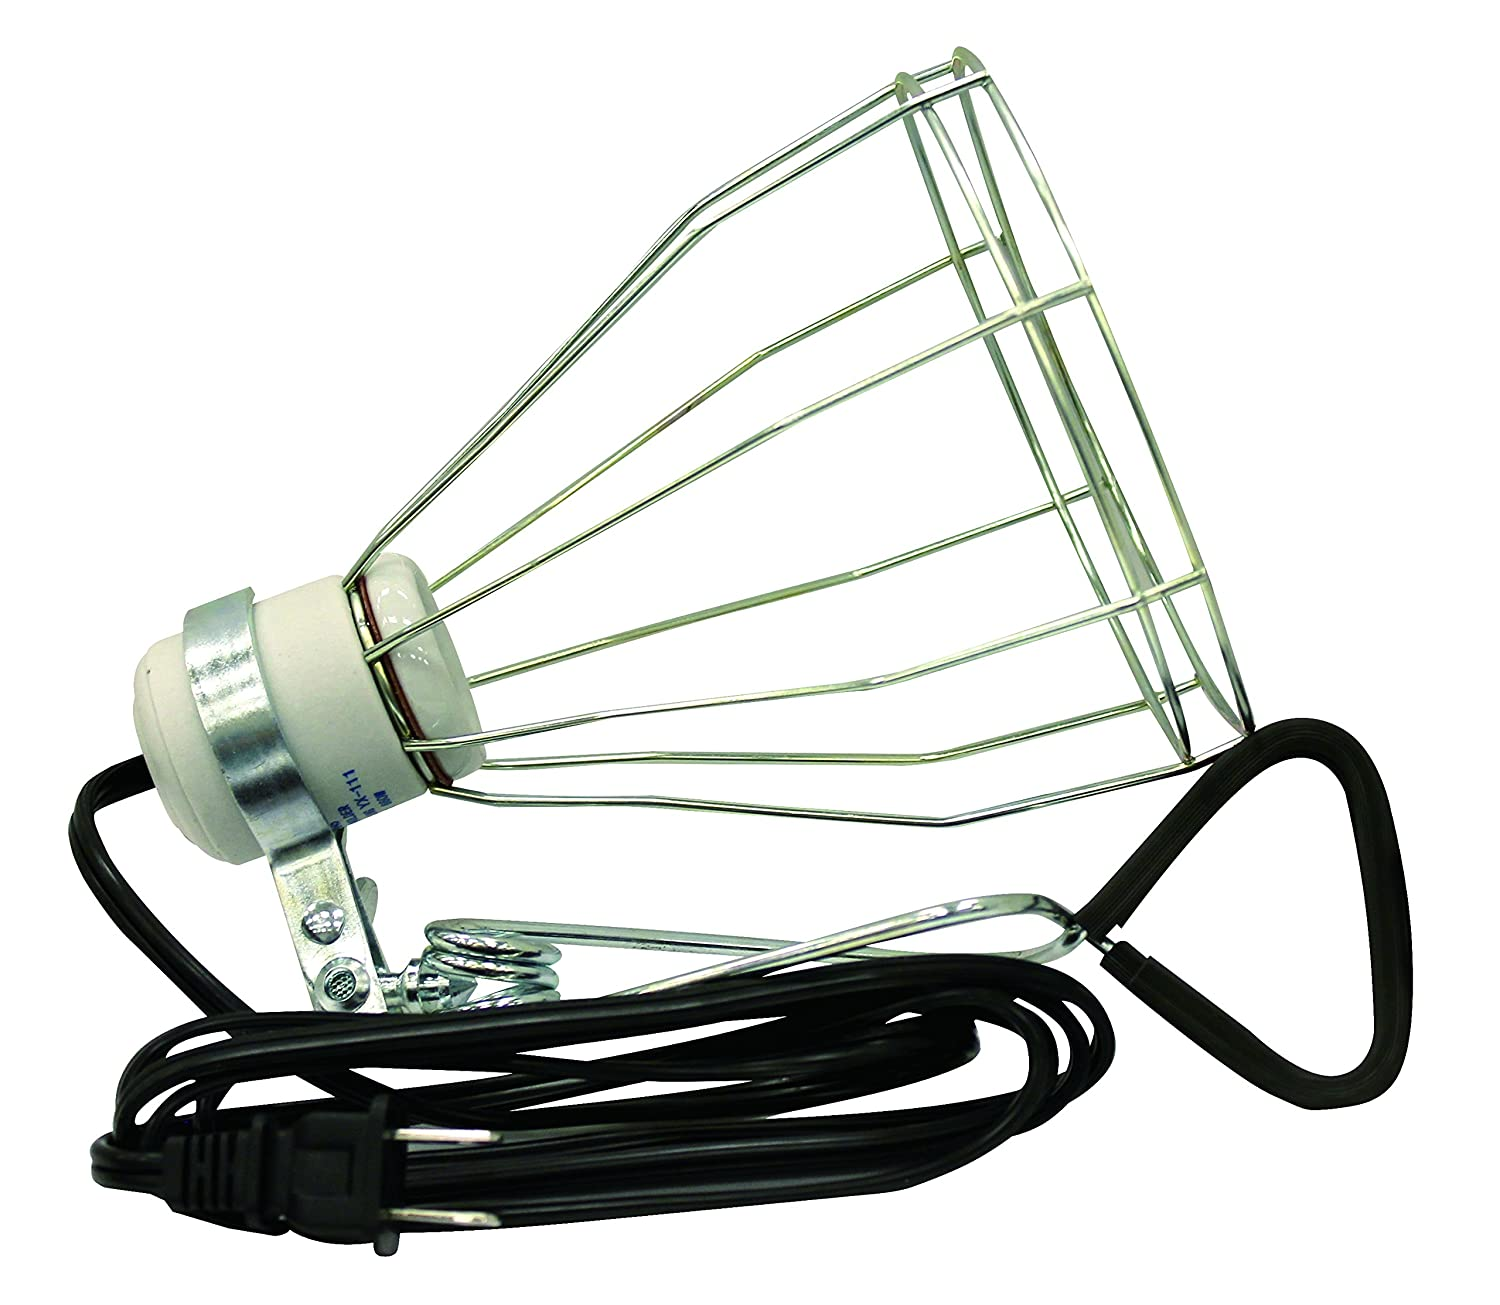 Woods 0165 Brooder Lamp with Bulb Guard,10.5 Inch Reflector and 6 Foot Cord 250 Watt, 18//2 SJTW